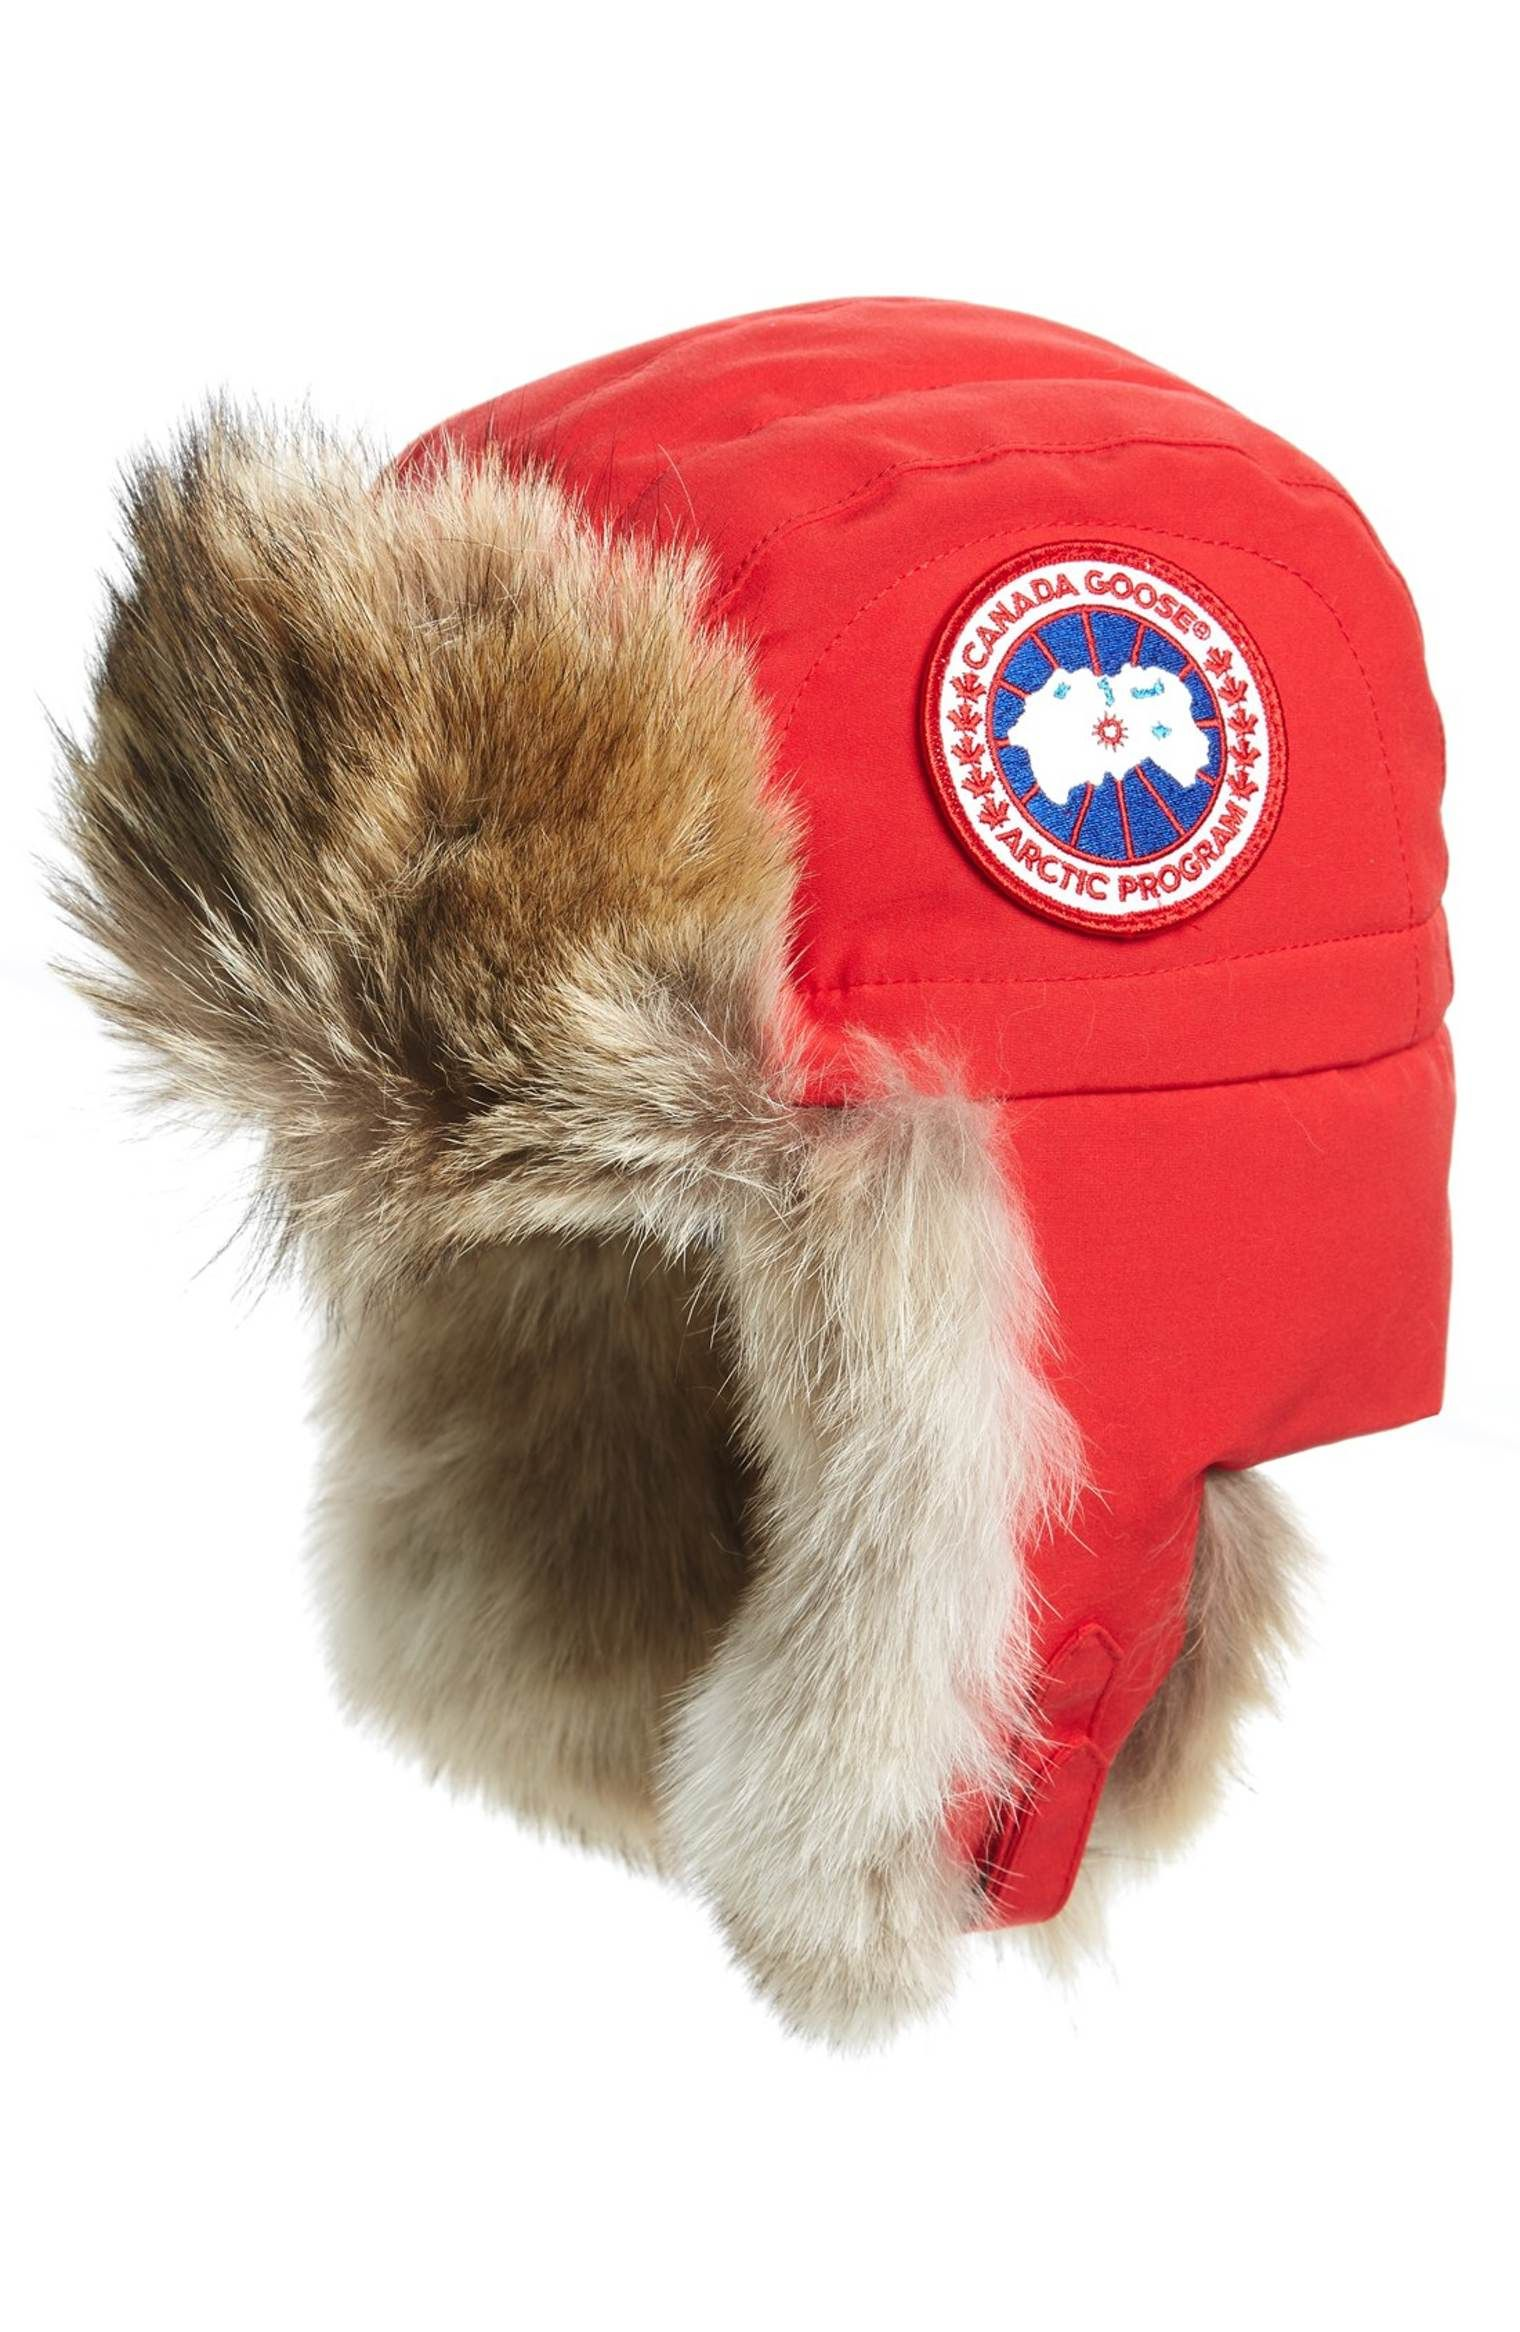 65ef114cc5e Main Image - Canada Goose Aviator Hat with Genuine Coyote Fur Trim ...